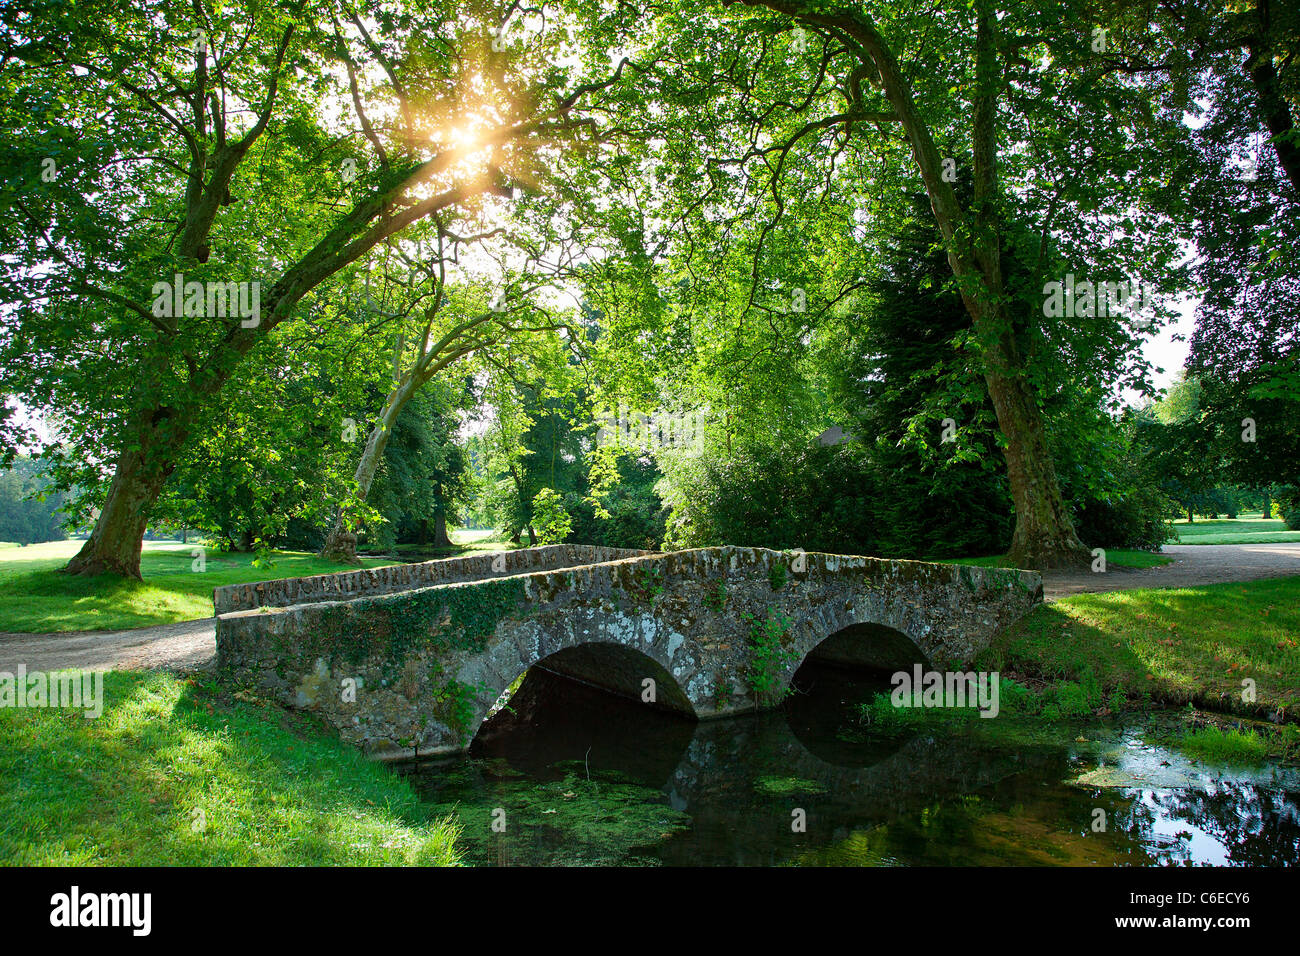 Chateau de Rambouillet, The English Garden - Stock Image